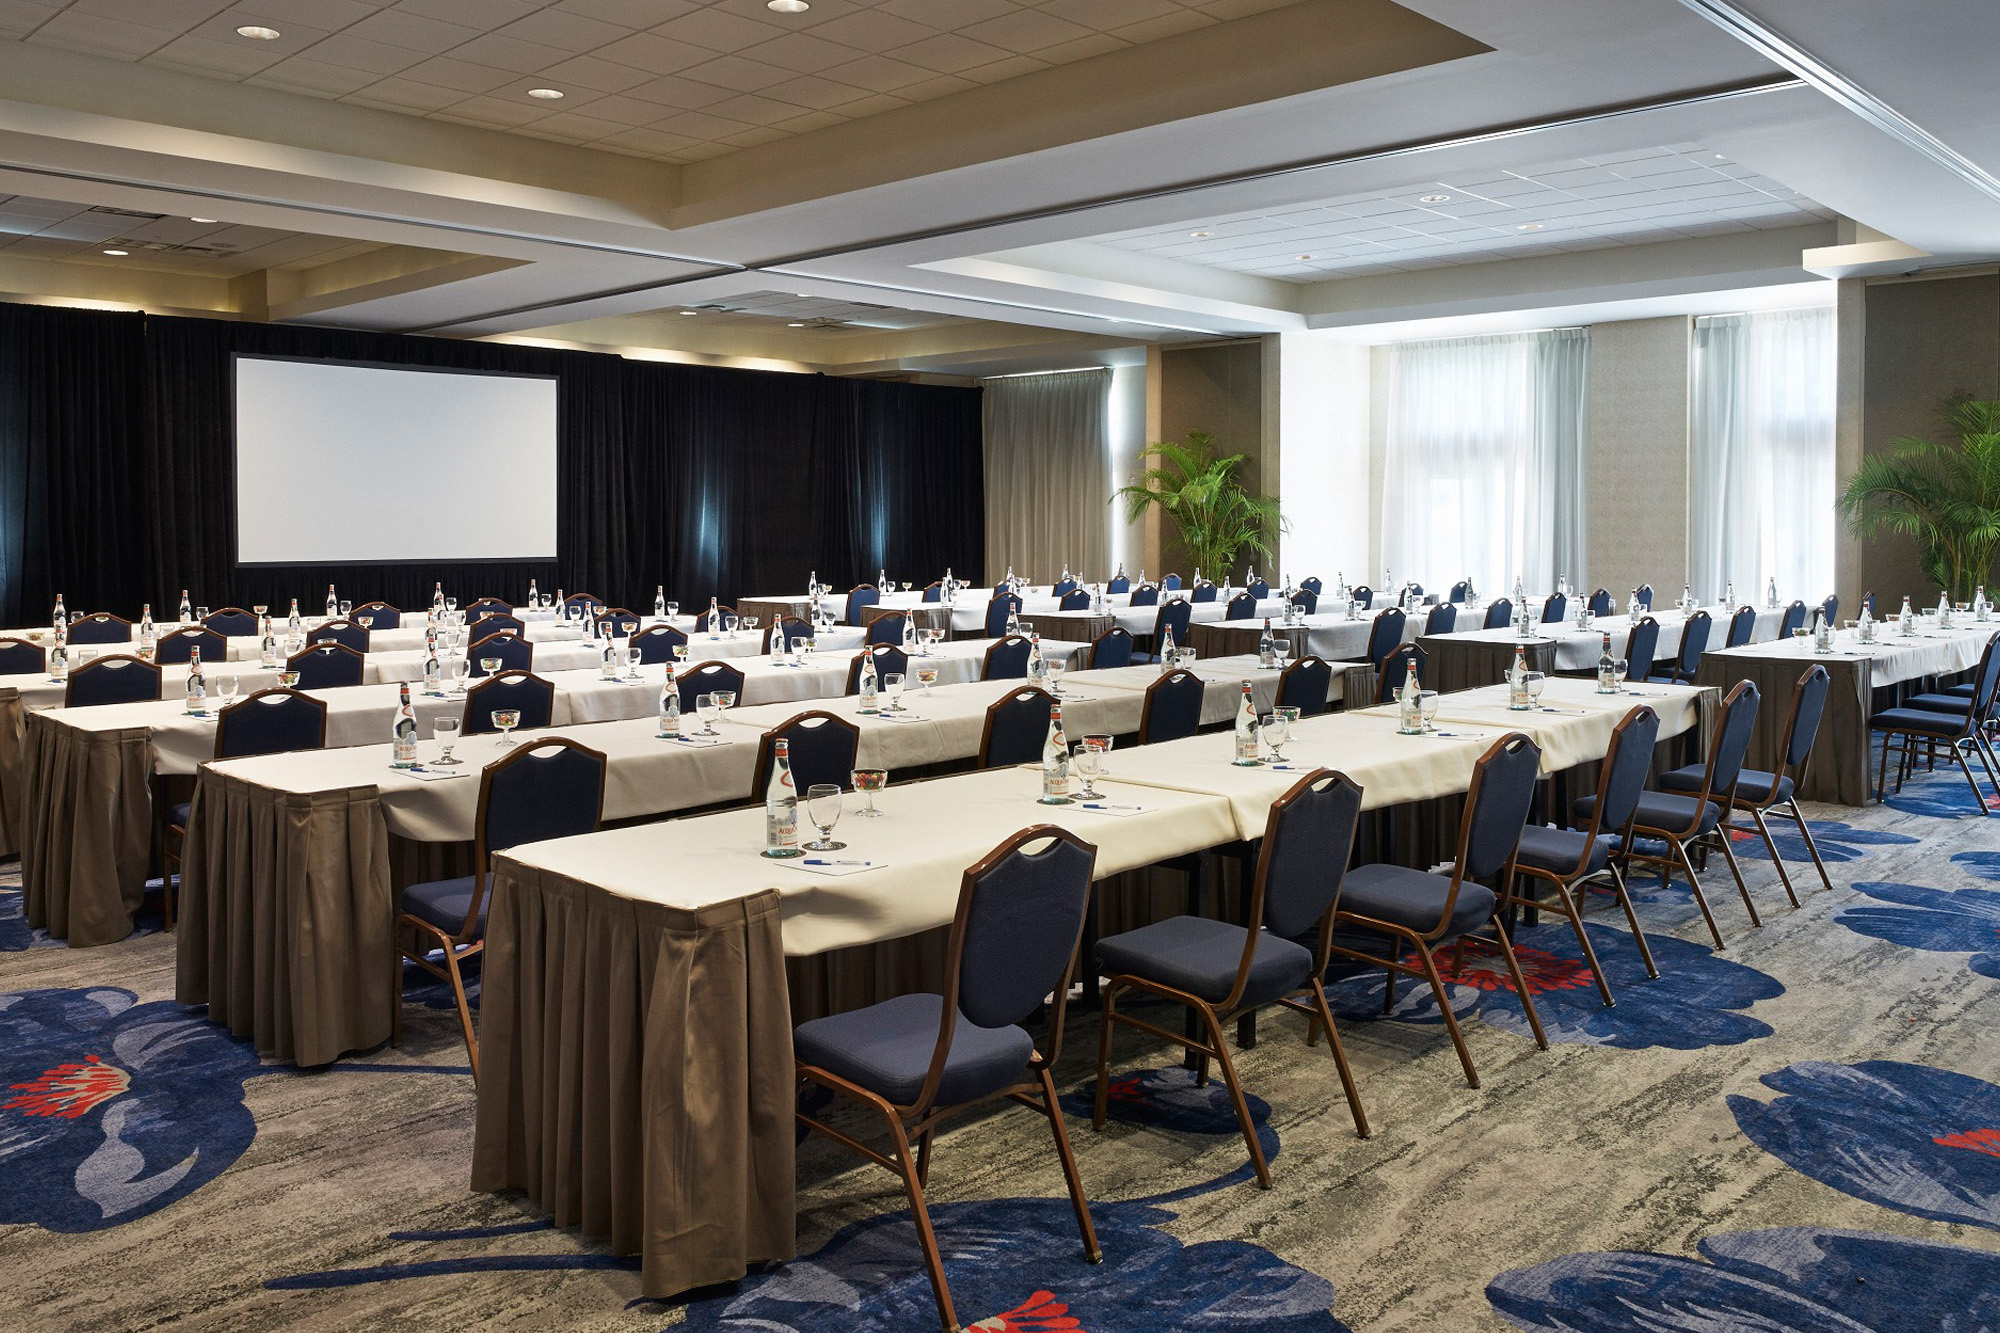 Meeting & Conferences - We have over 25 locations, worldwide...